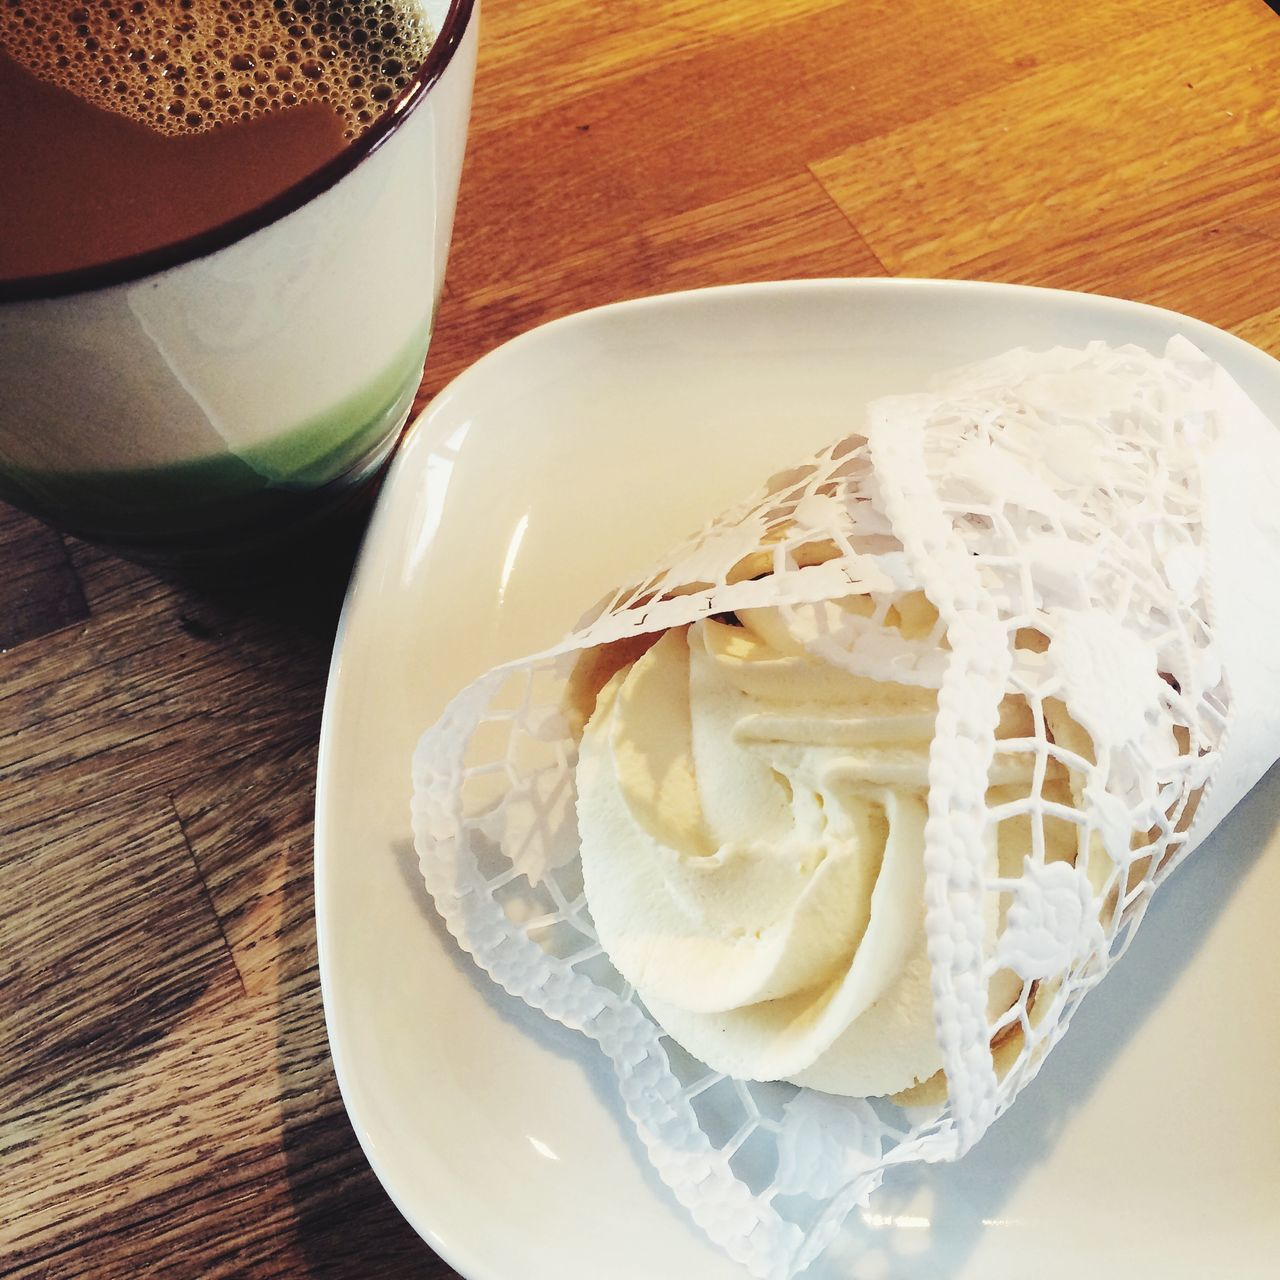 New trend in Sweden, are you against or like the evolution of the Semla Semmelwrap Fika Coffee